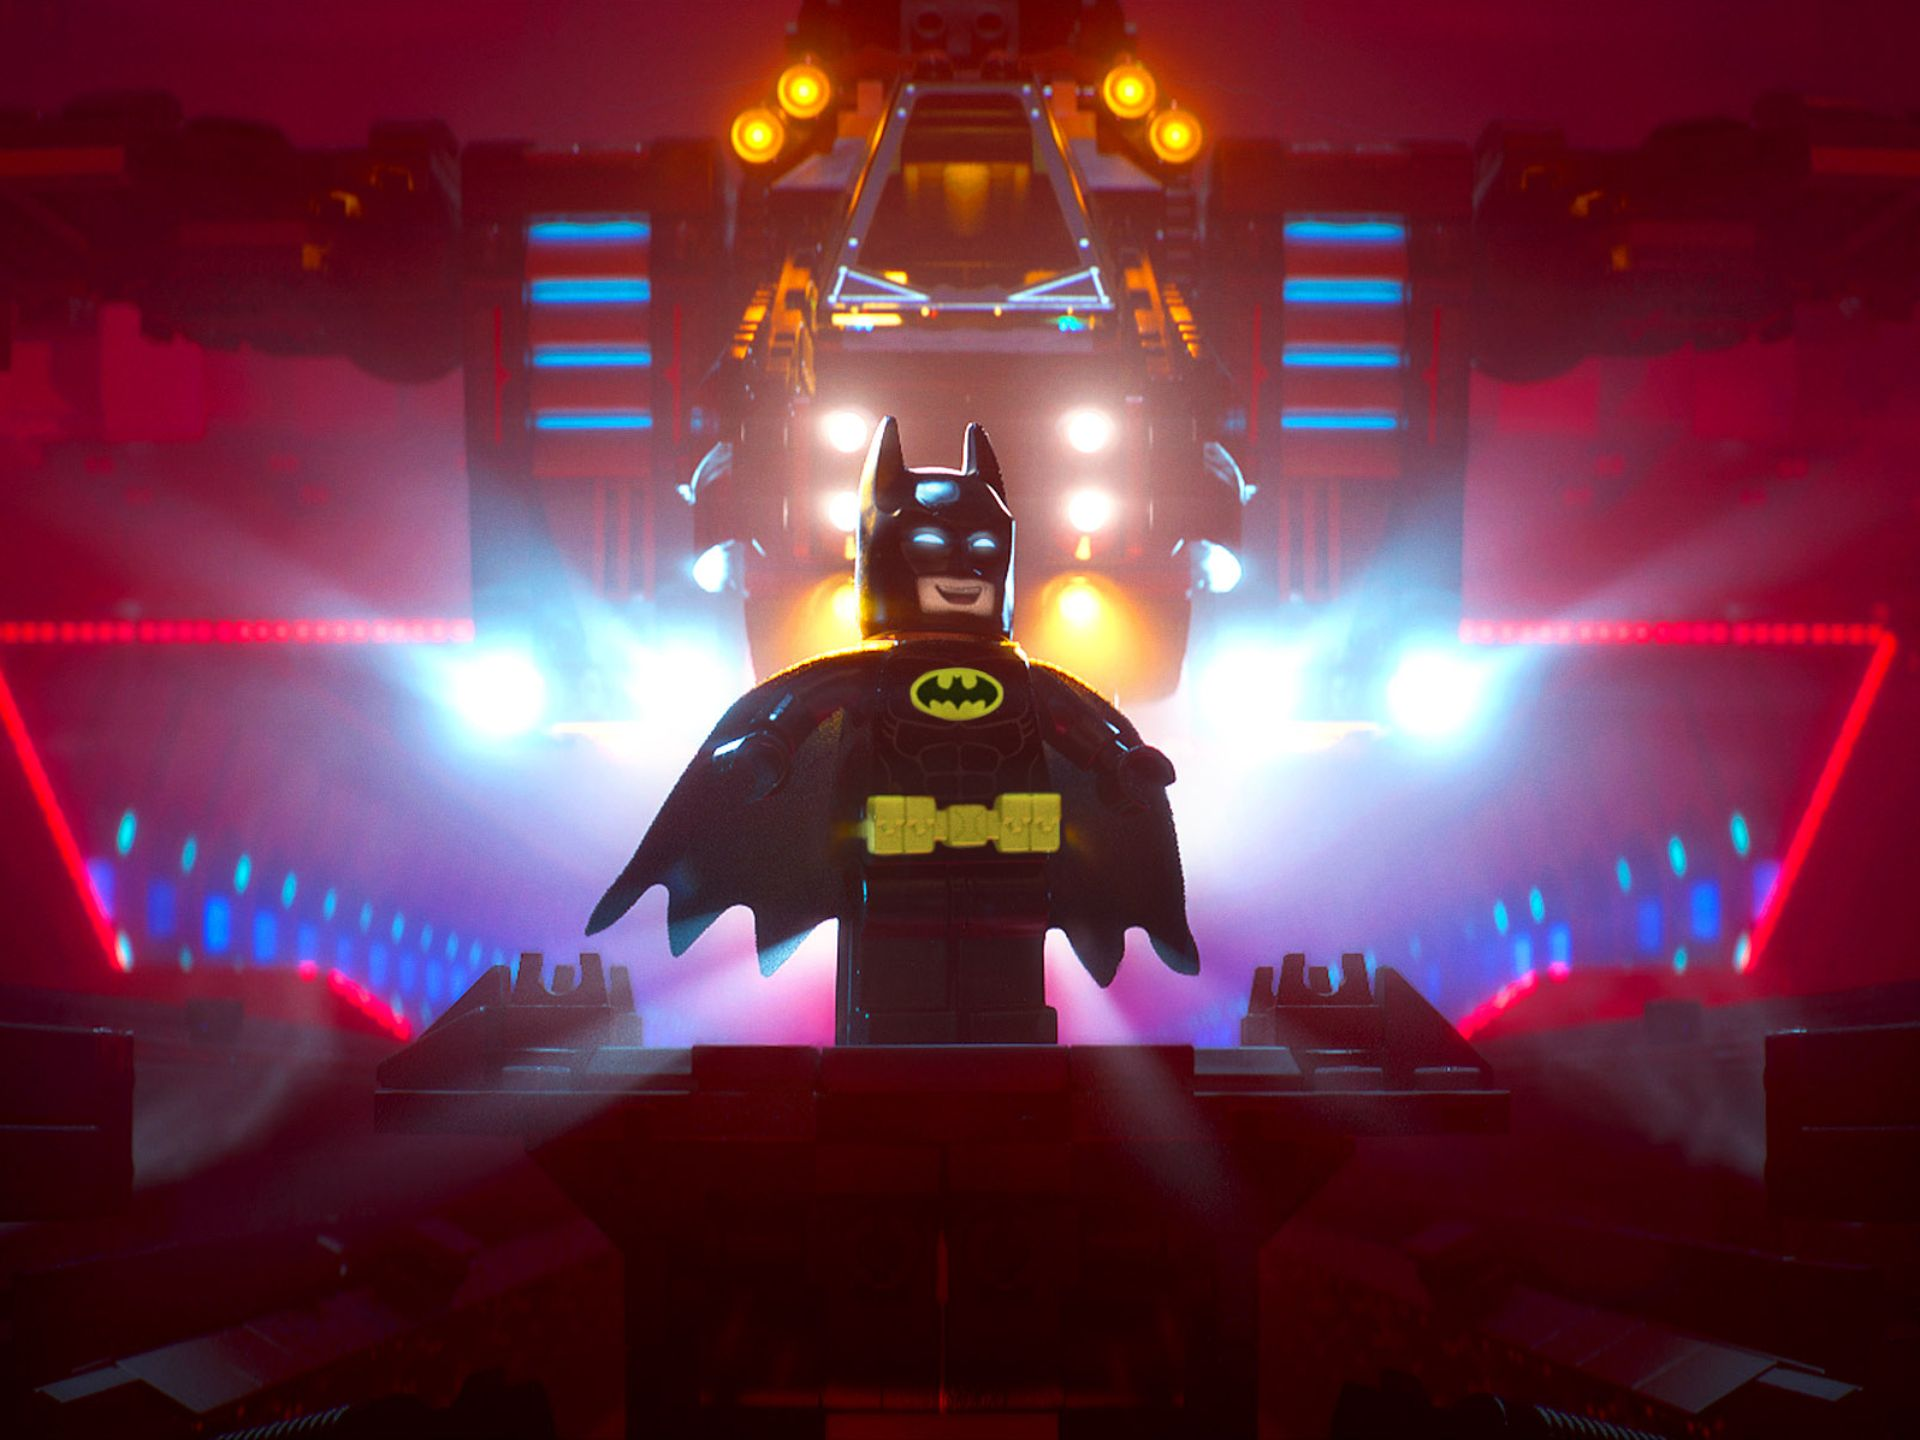 The Lego Batman Movie 'Batcave' Teaser 3